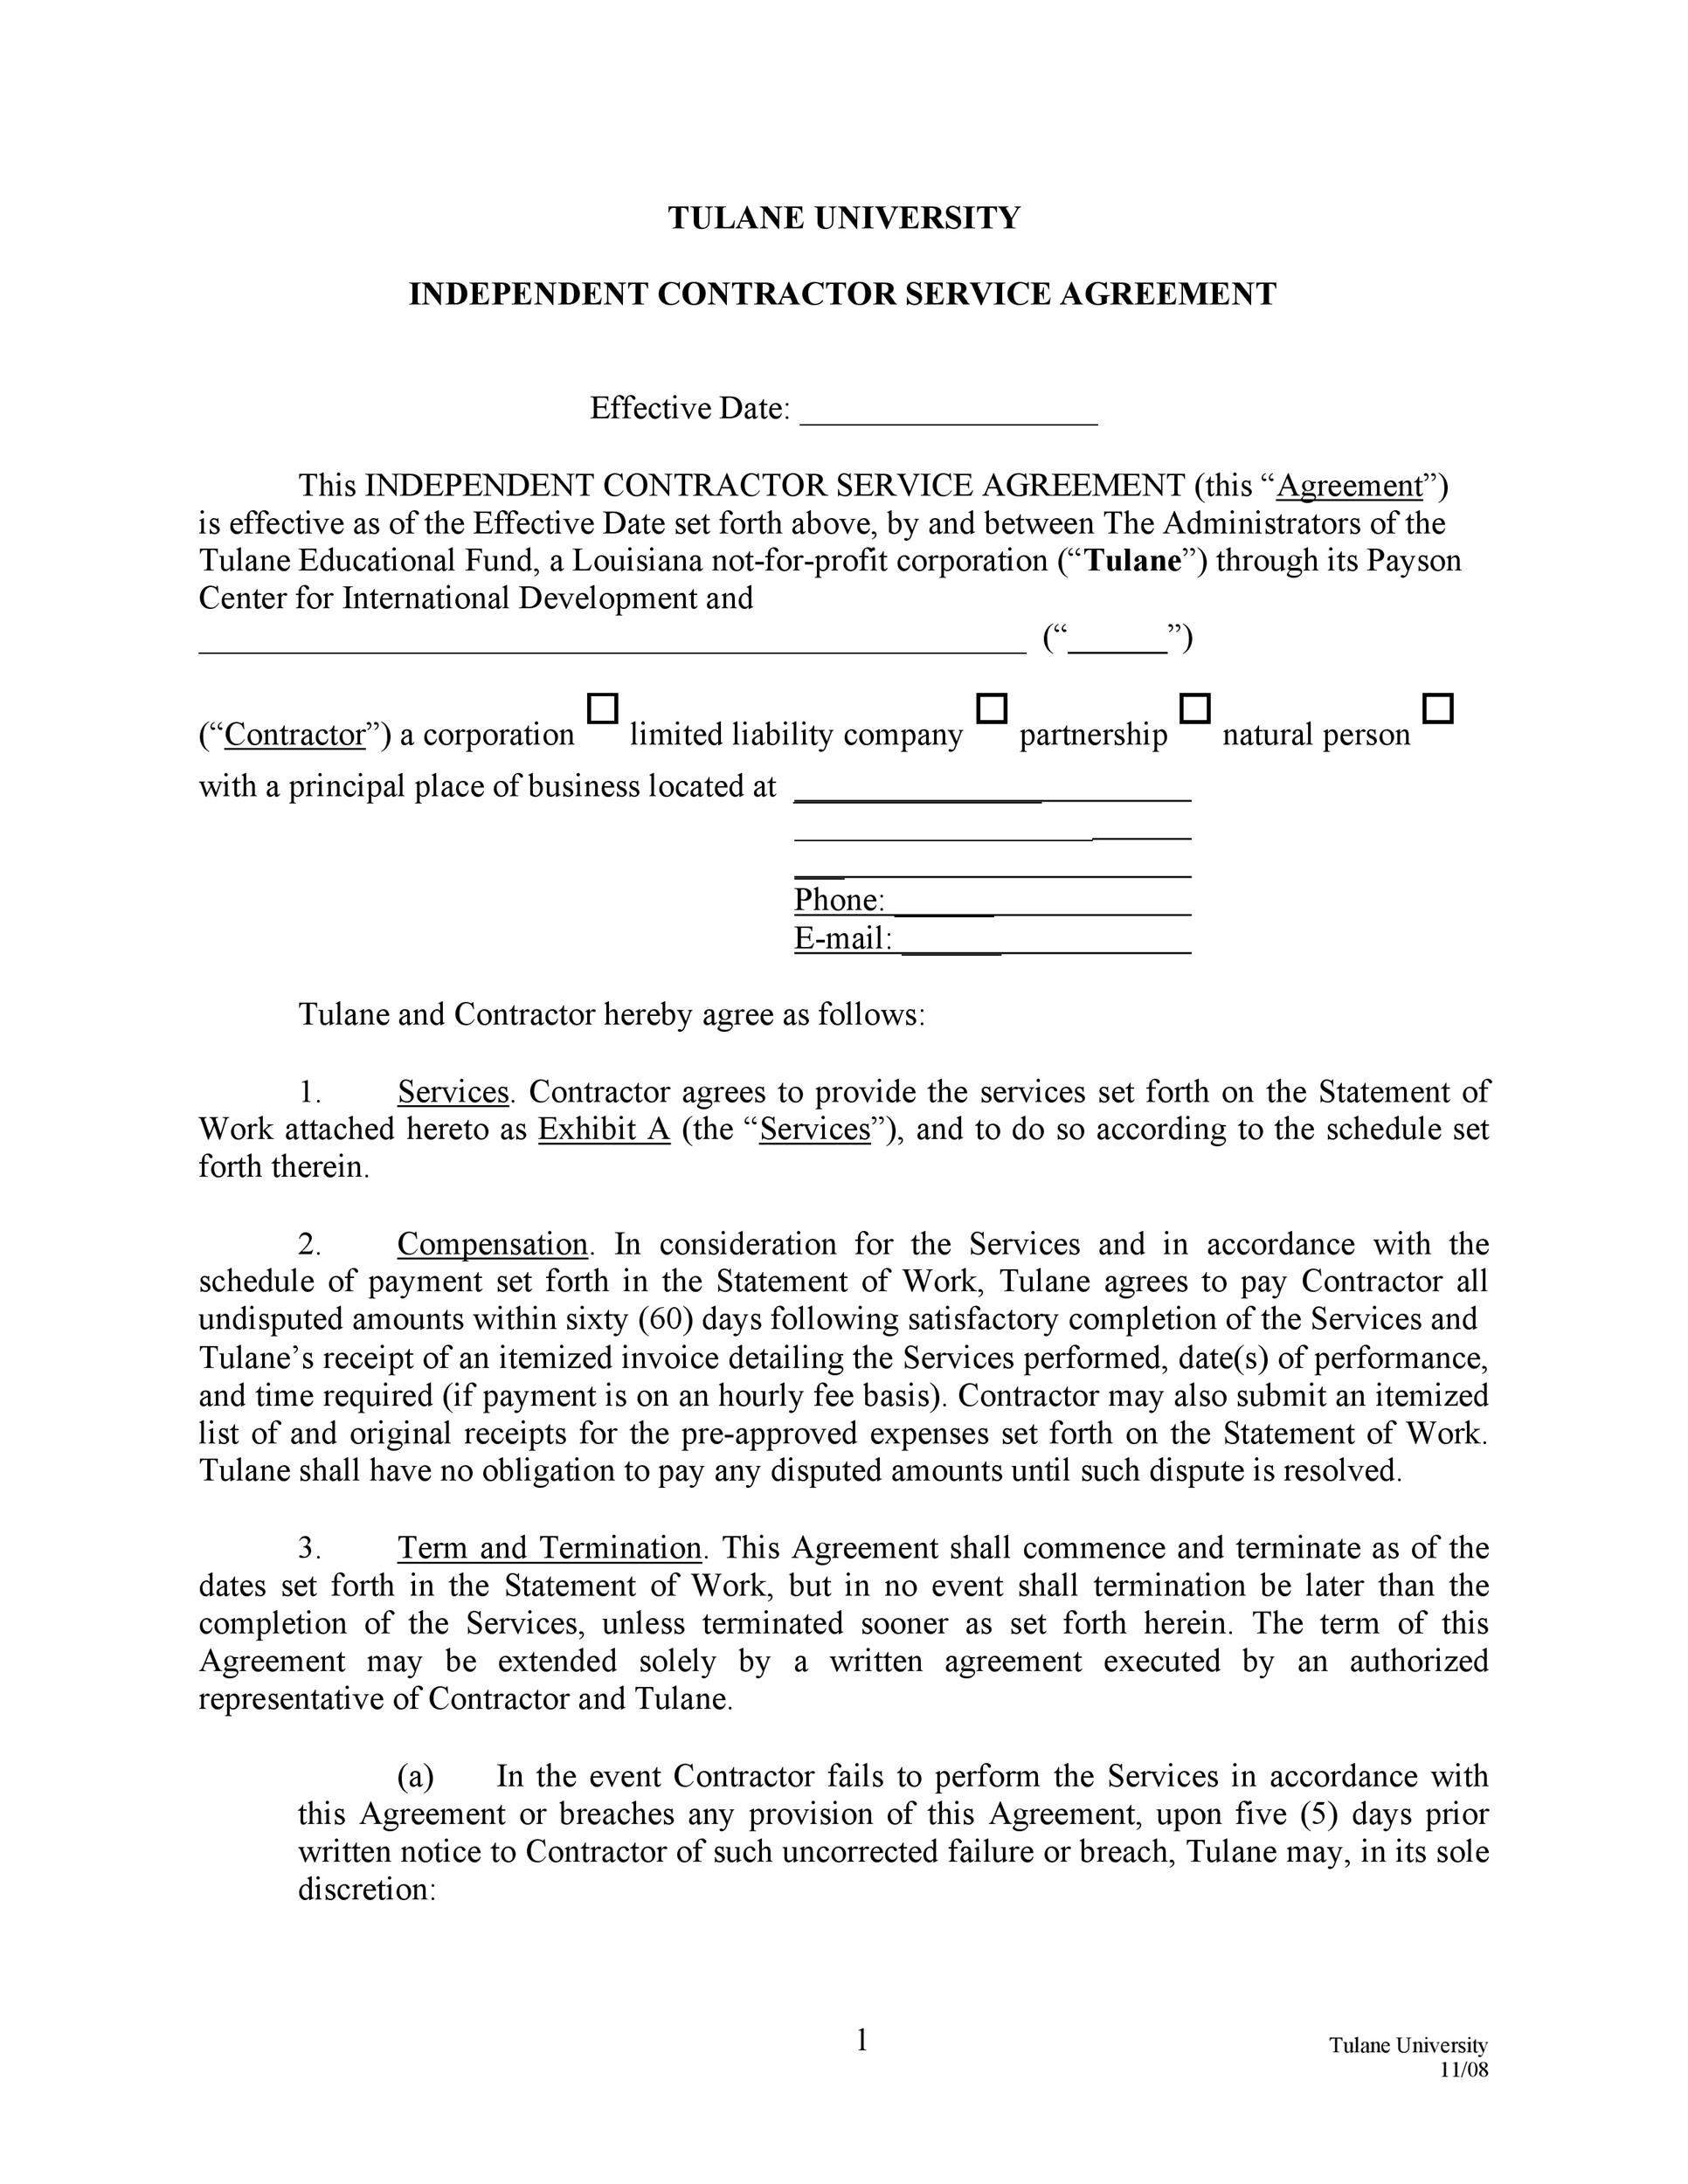 50+ Professional Service Agreement Templates & Contracts